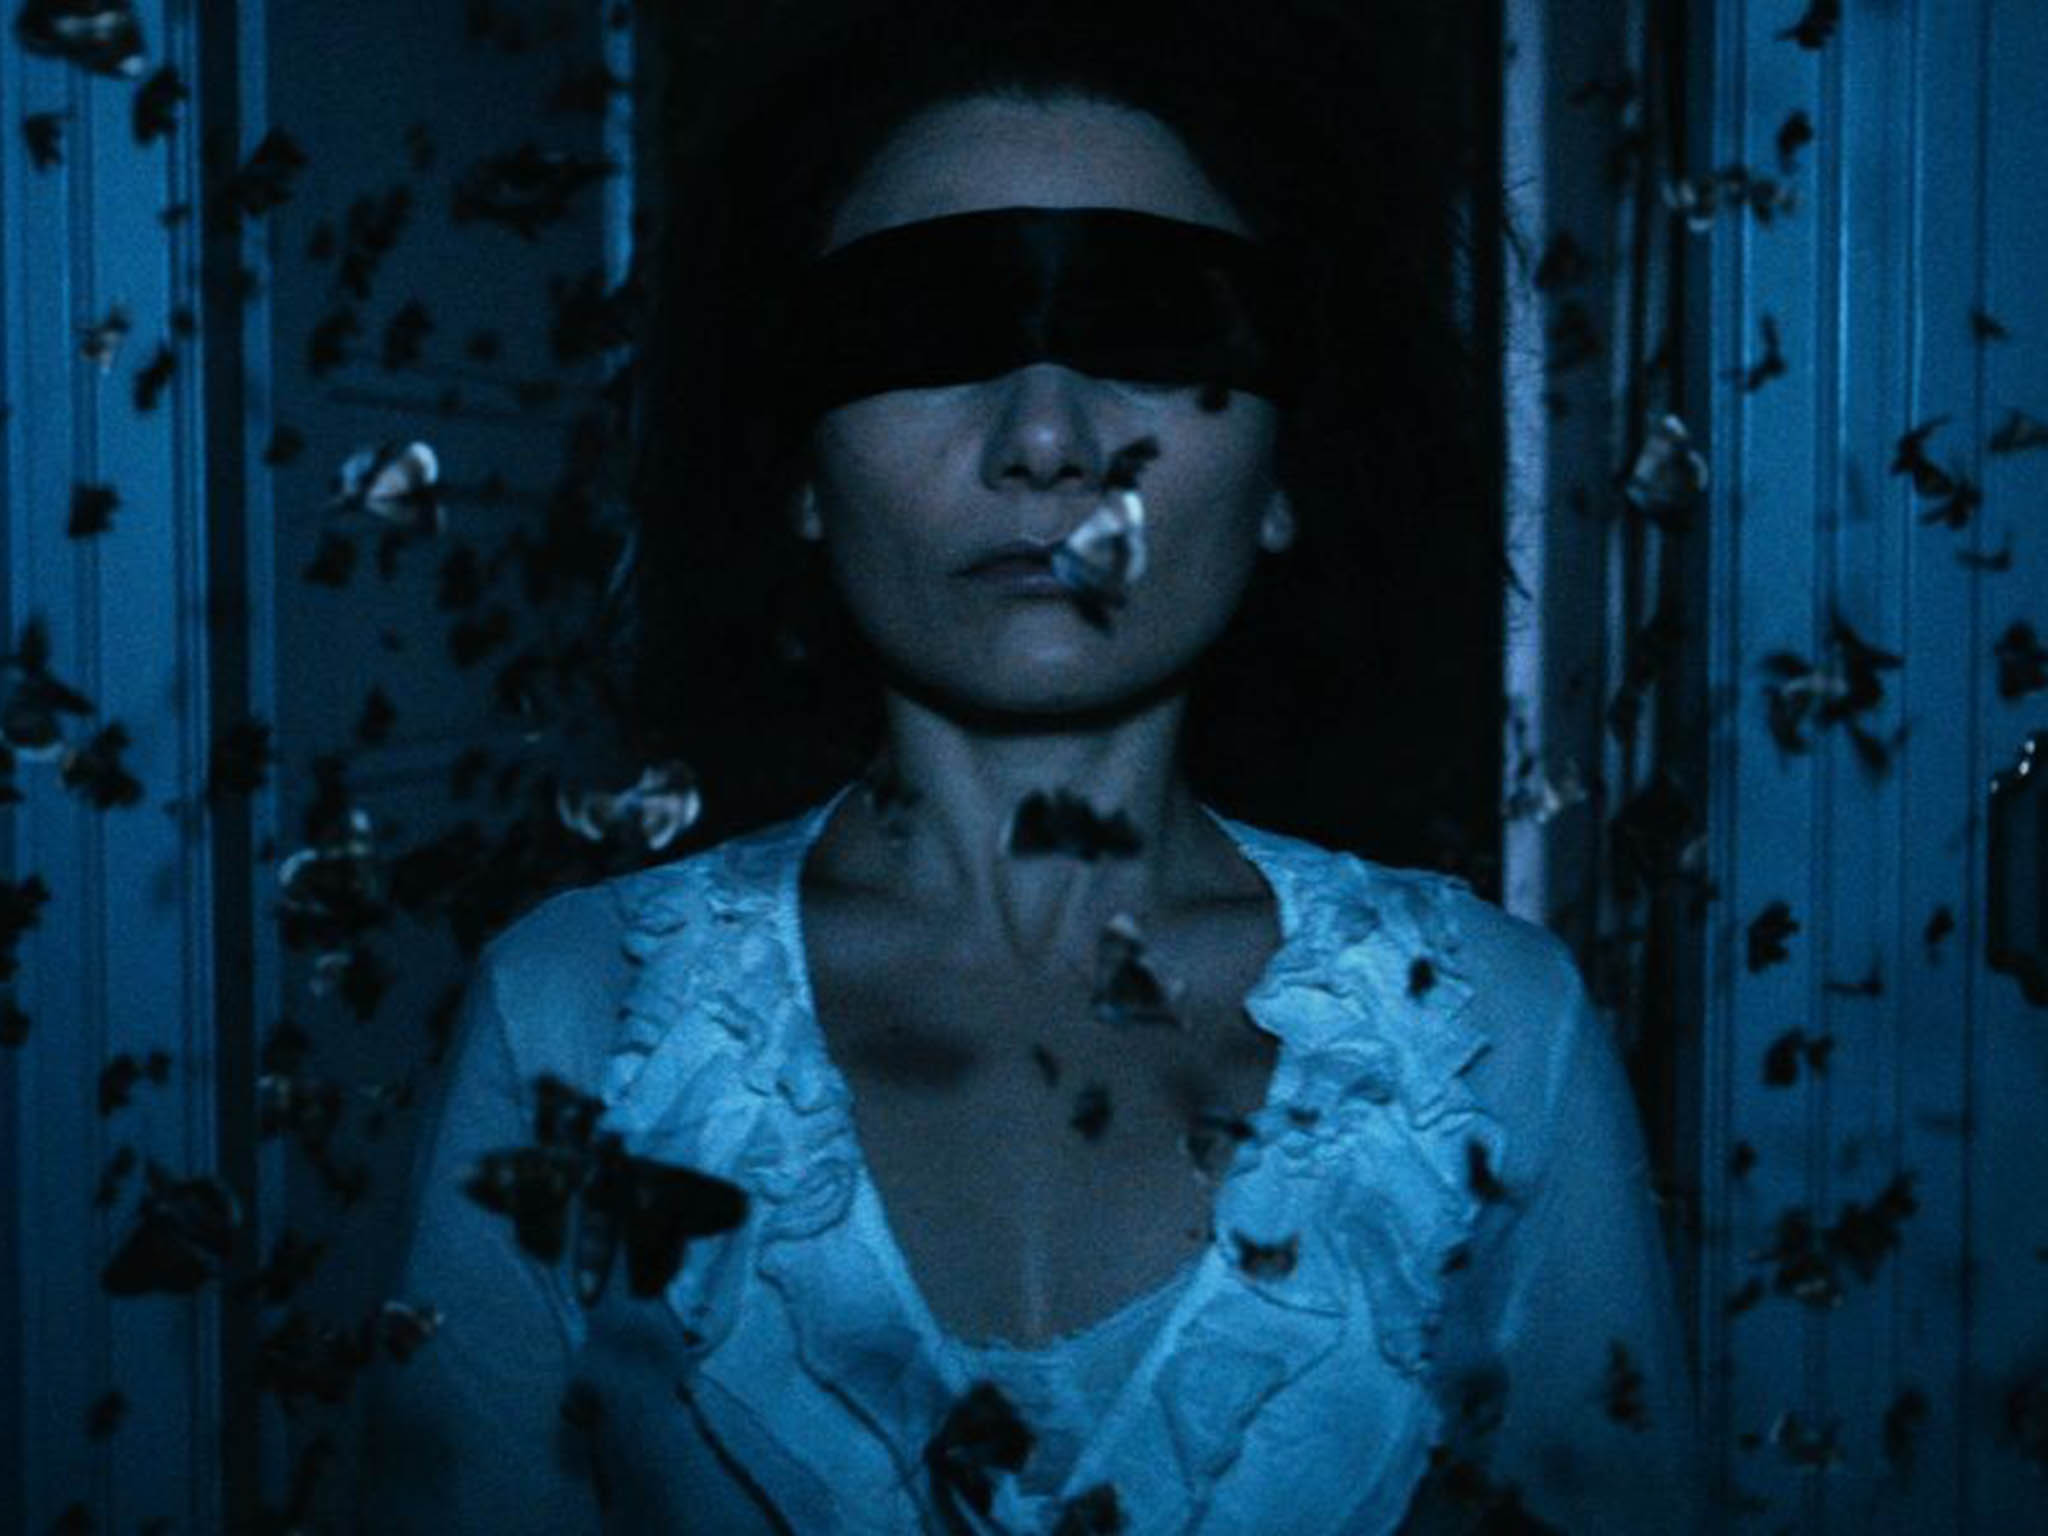 Duke of Burgundy film still press image from jake.garriock@curzon.com Chiara D'Anna as Evelyn.tif